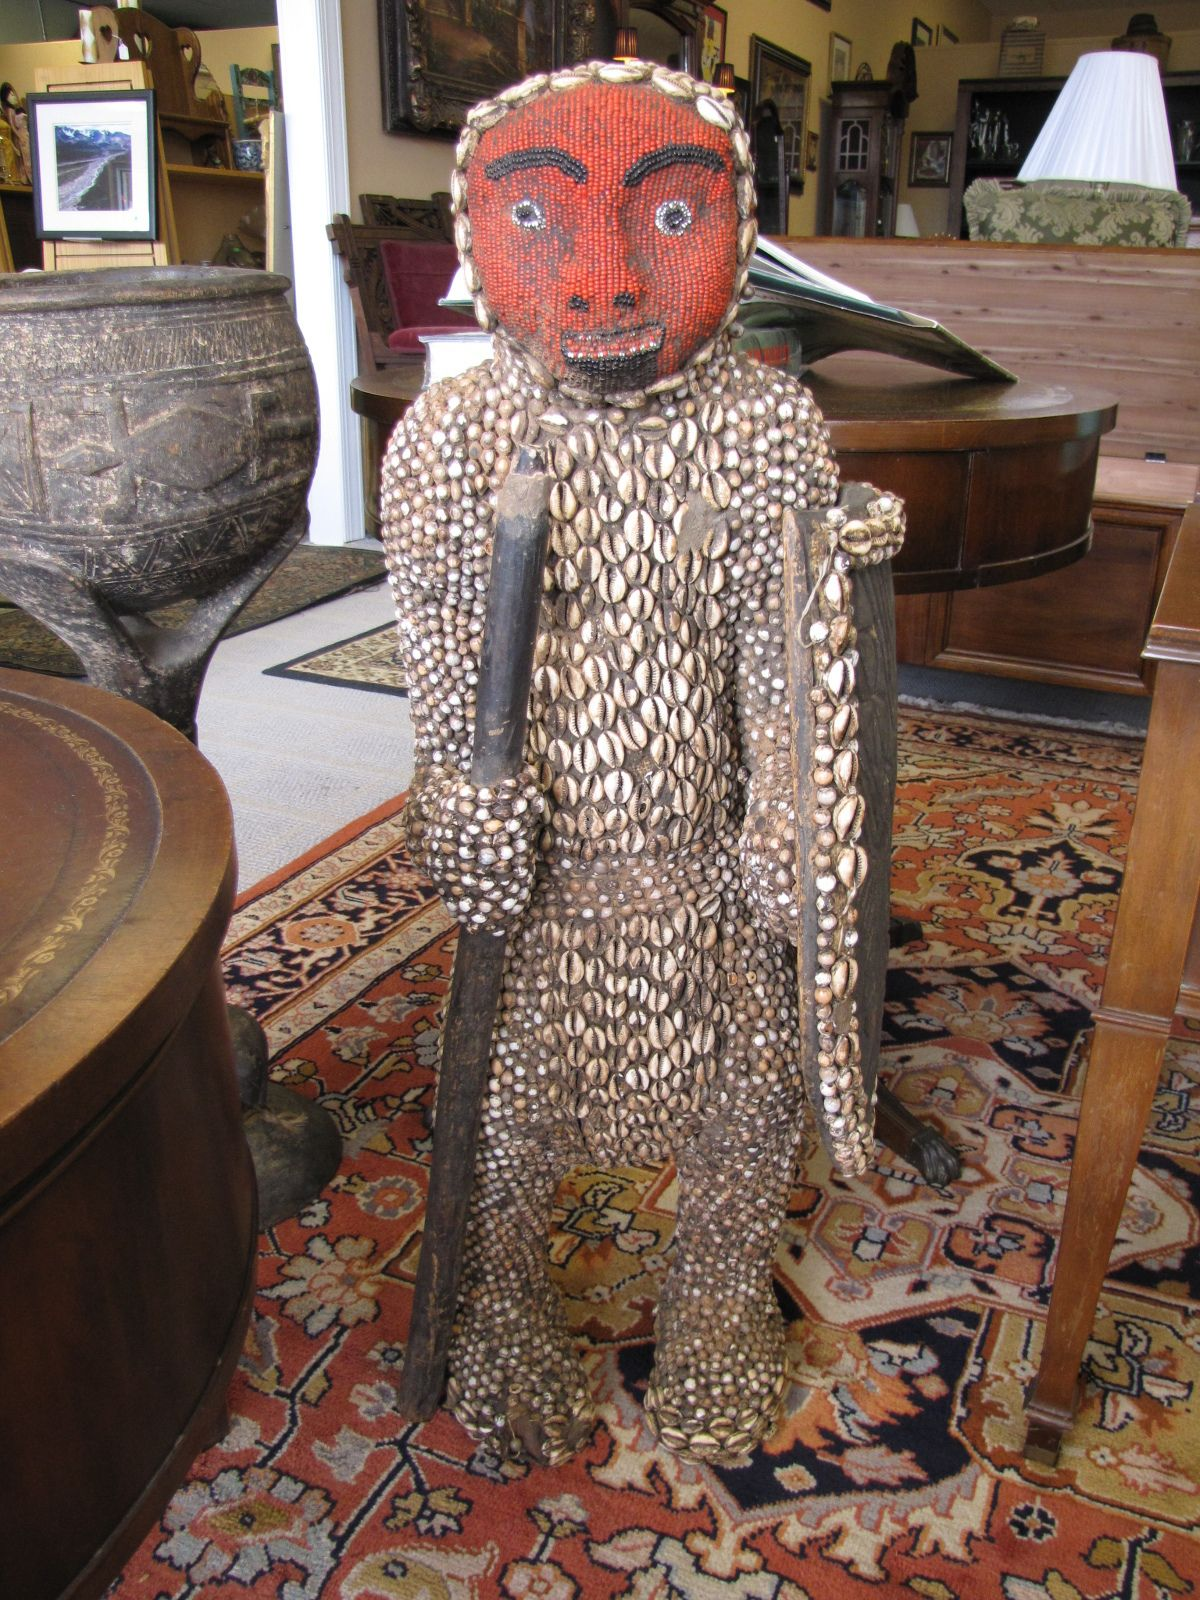 African Statue Made Out Of Seashells At The Raleigh Furniture Gallery